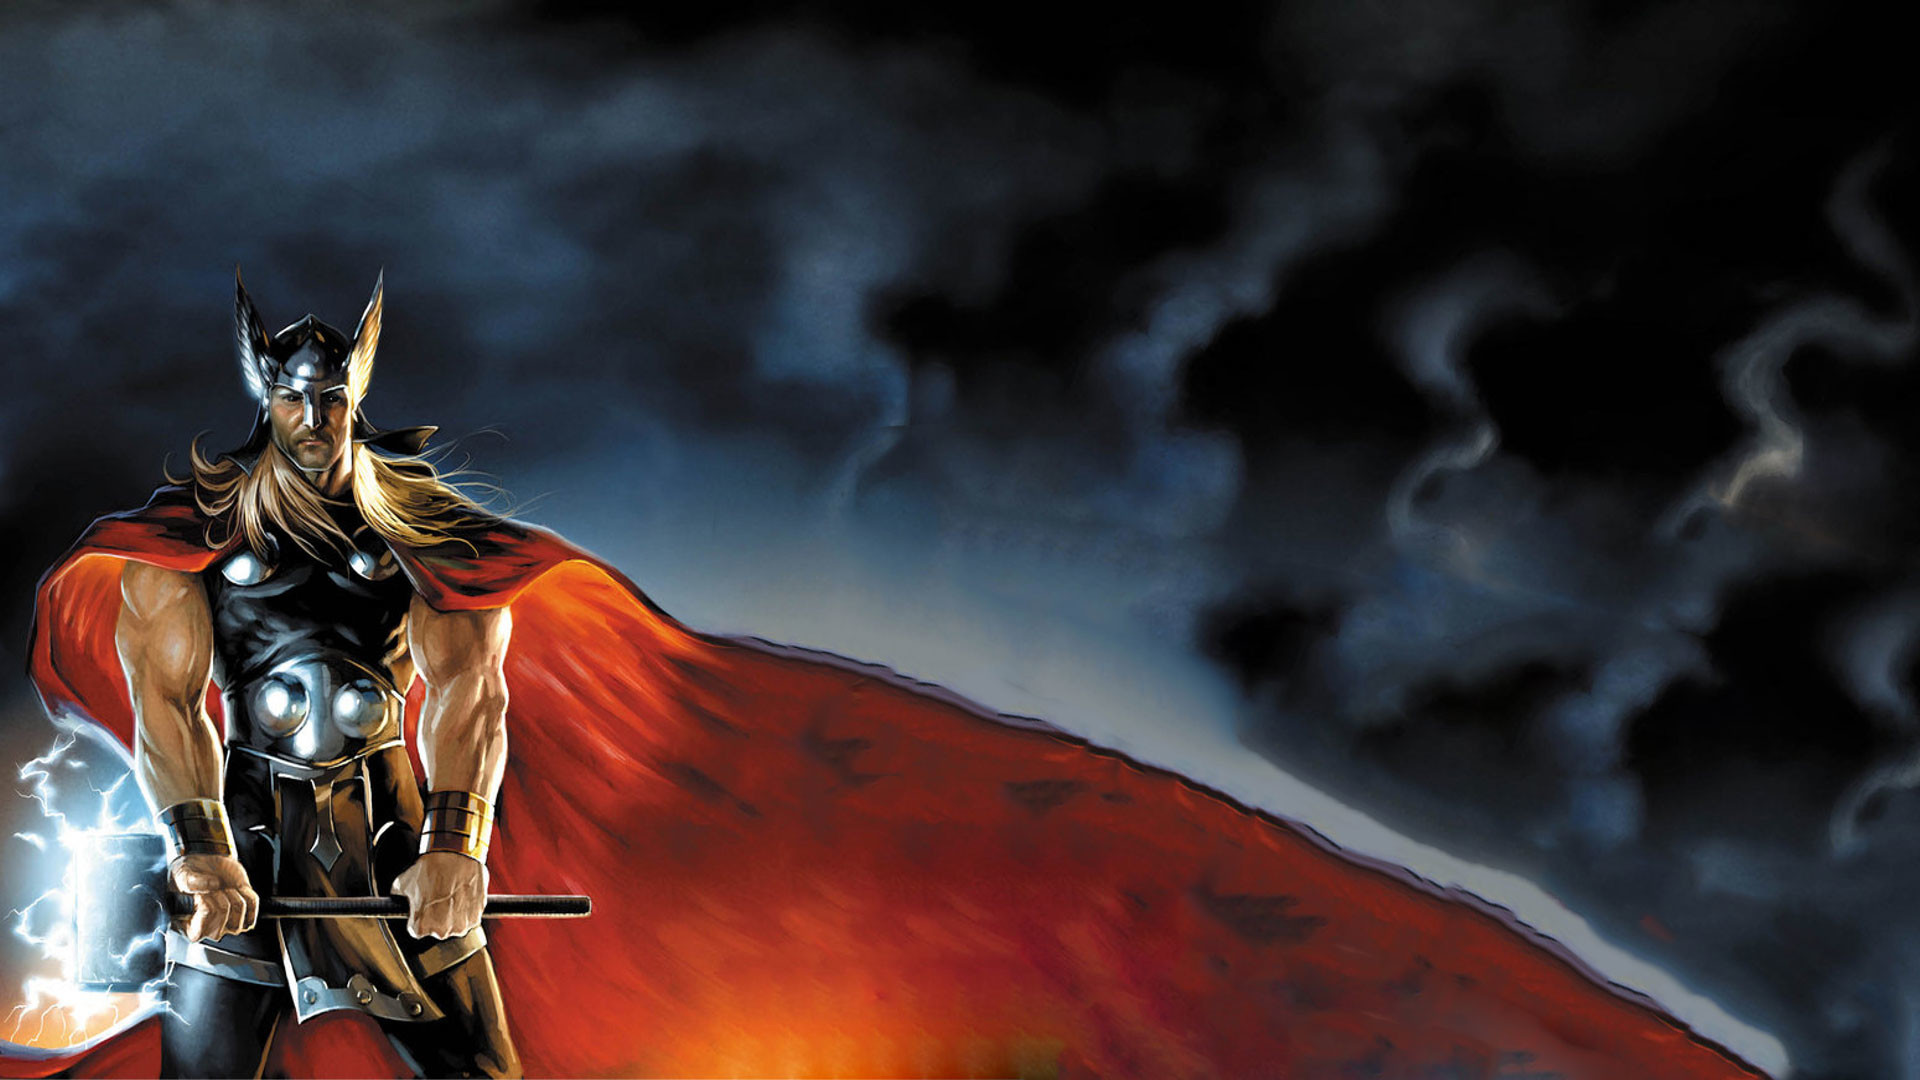 Thor Pictures Free Wallpaper: Thors Hammer Wallpaper (77+ Images